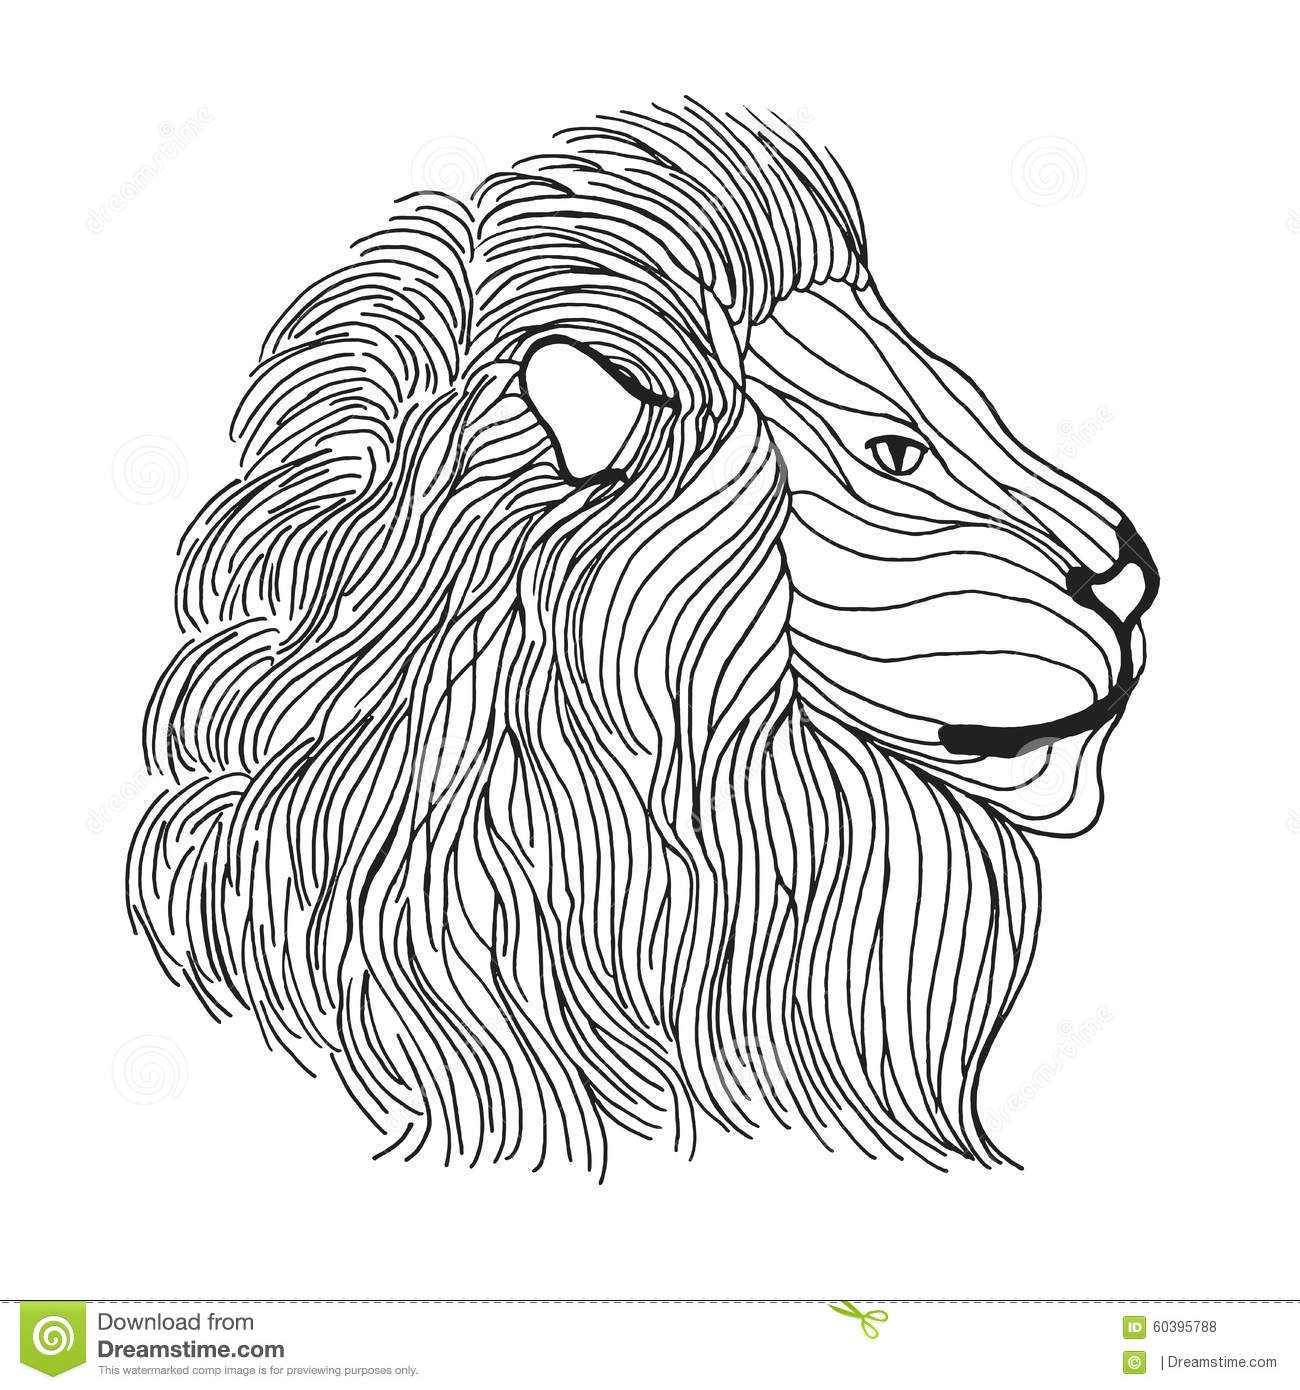 Zentangle Stylized Lion Head Sketch For Tattoo Or T Shirt